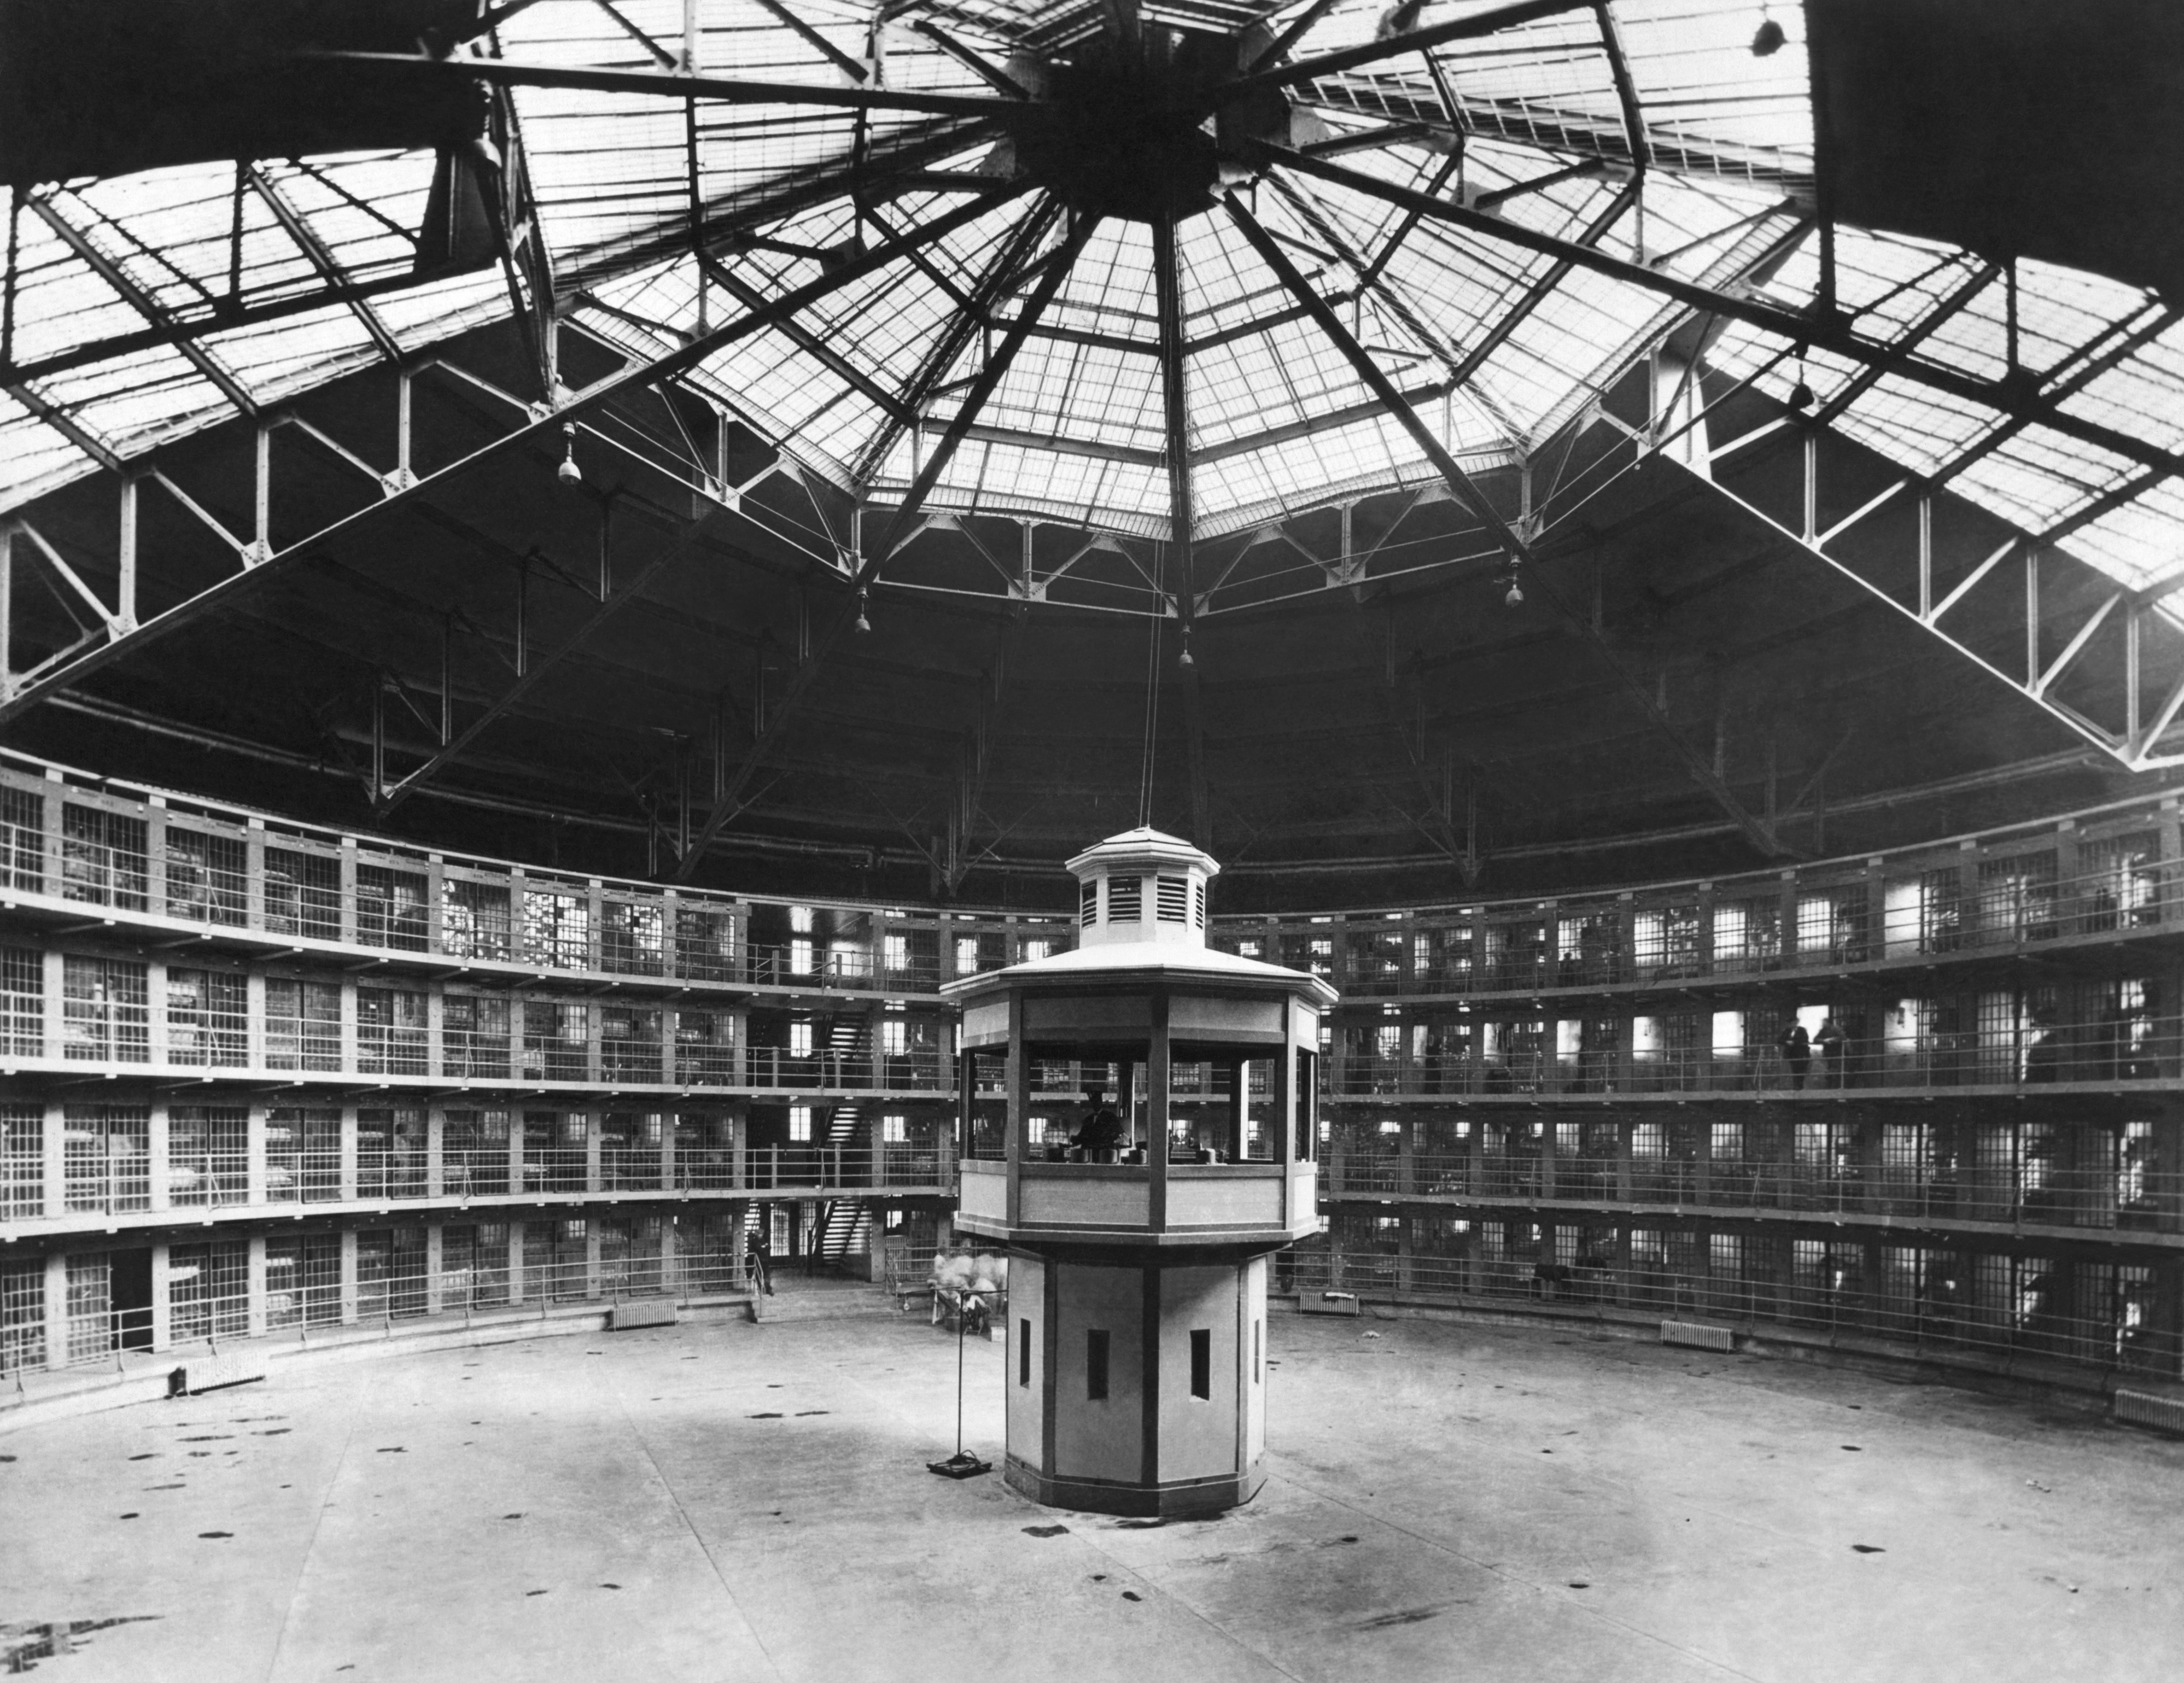 Panopticism by michel foucault and schools as prisons